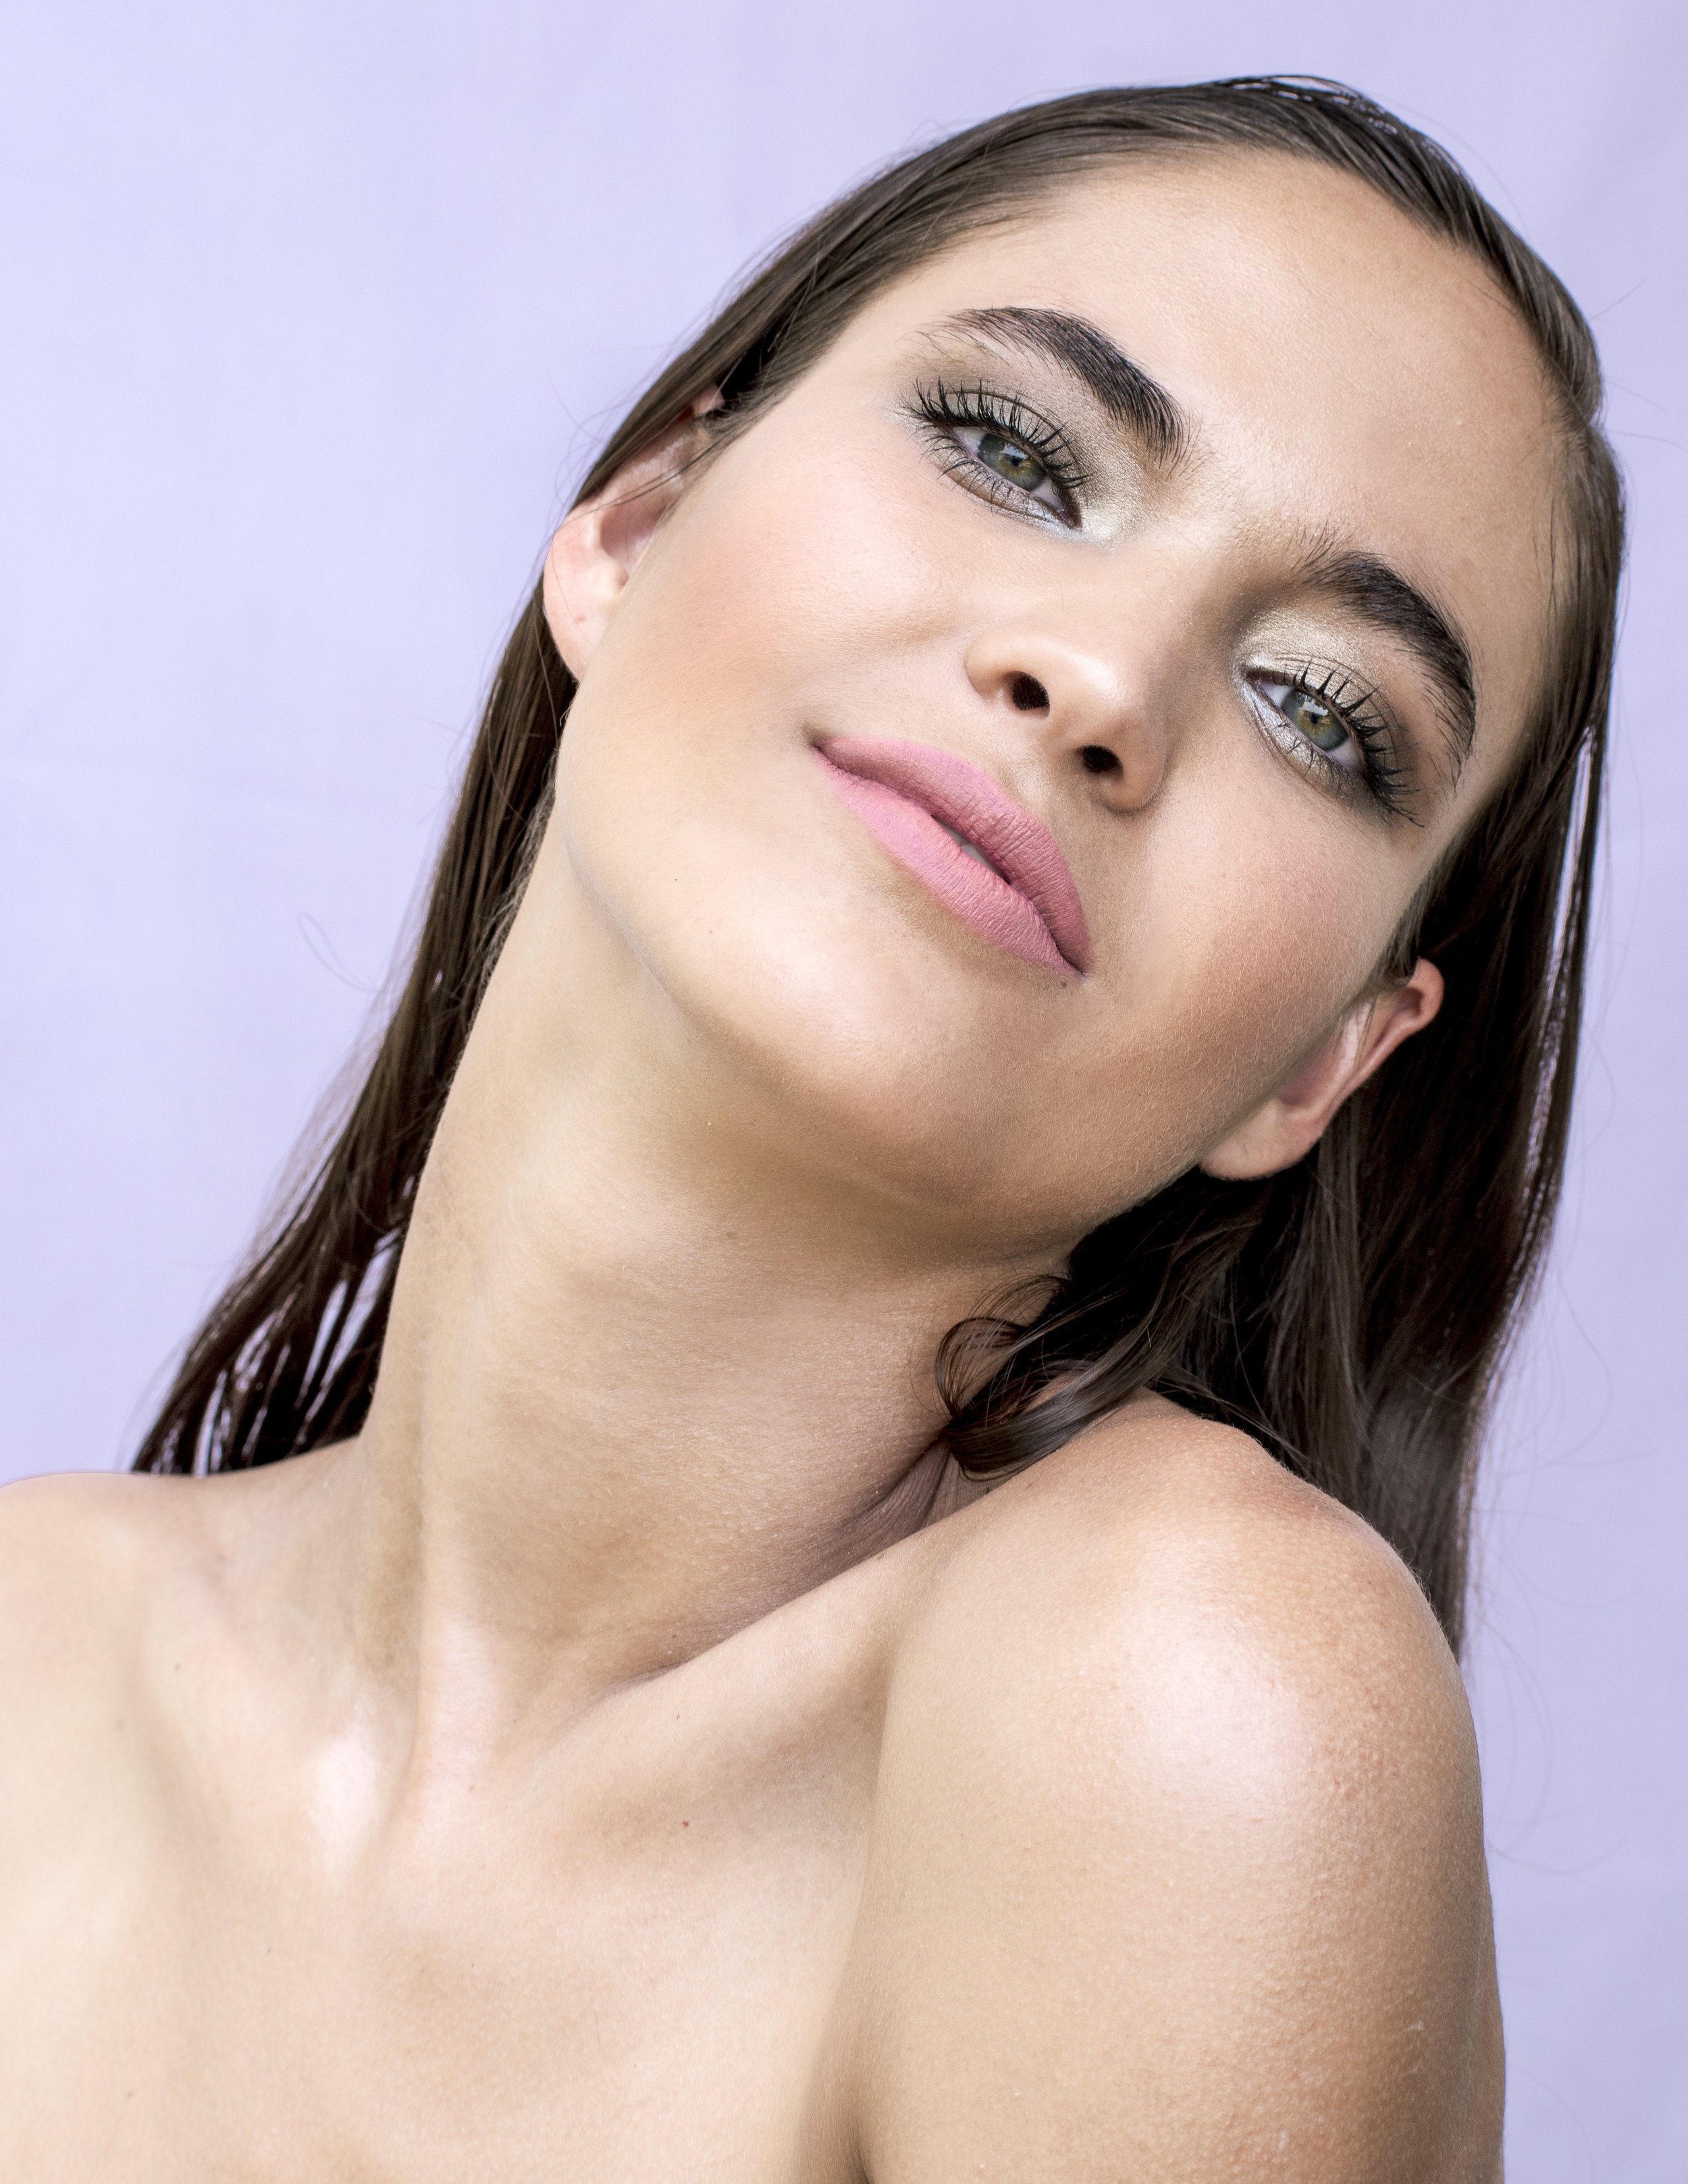 7. It's Not About That Bass! - Summer skin needs less foundation, not more. If you have to wear it, keep your base as sheer as possible.